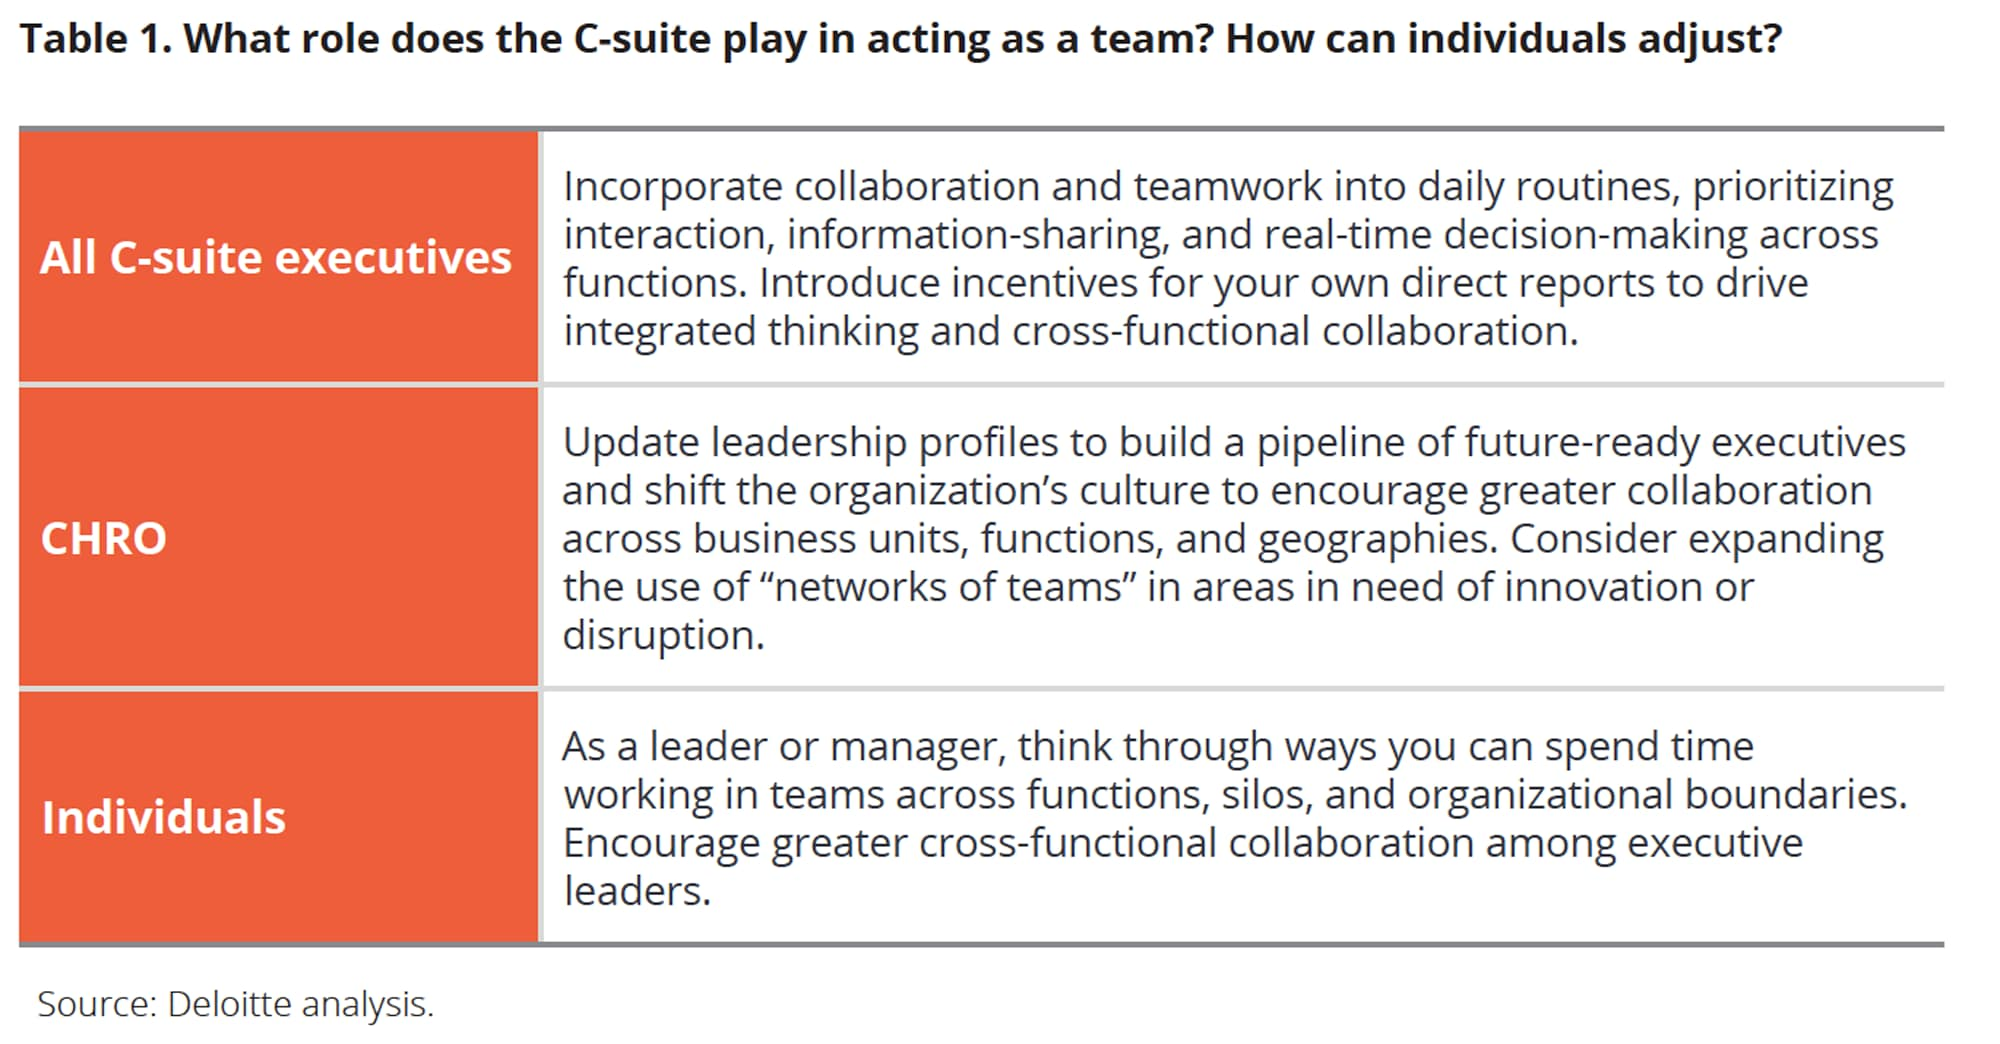 What role does the C-suite play in acting as a team? How can individuals adjust?